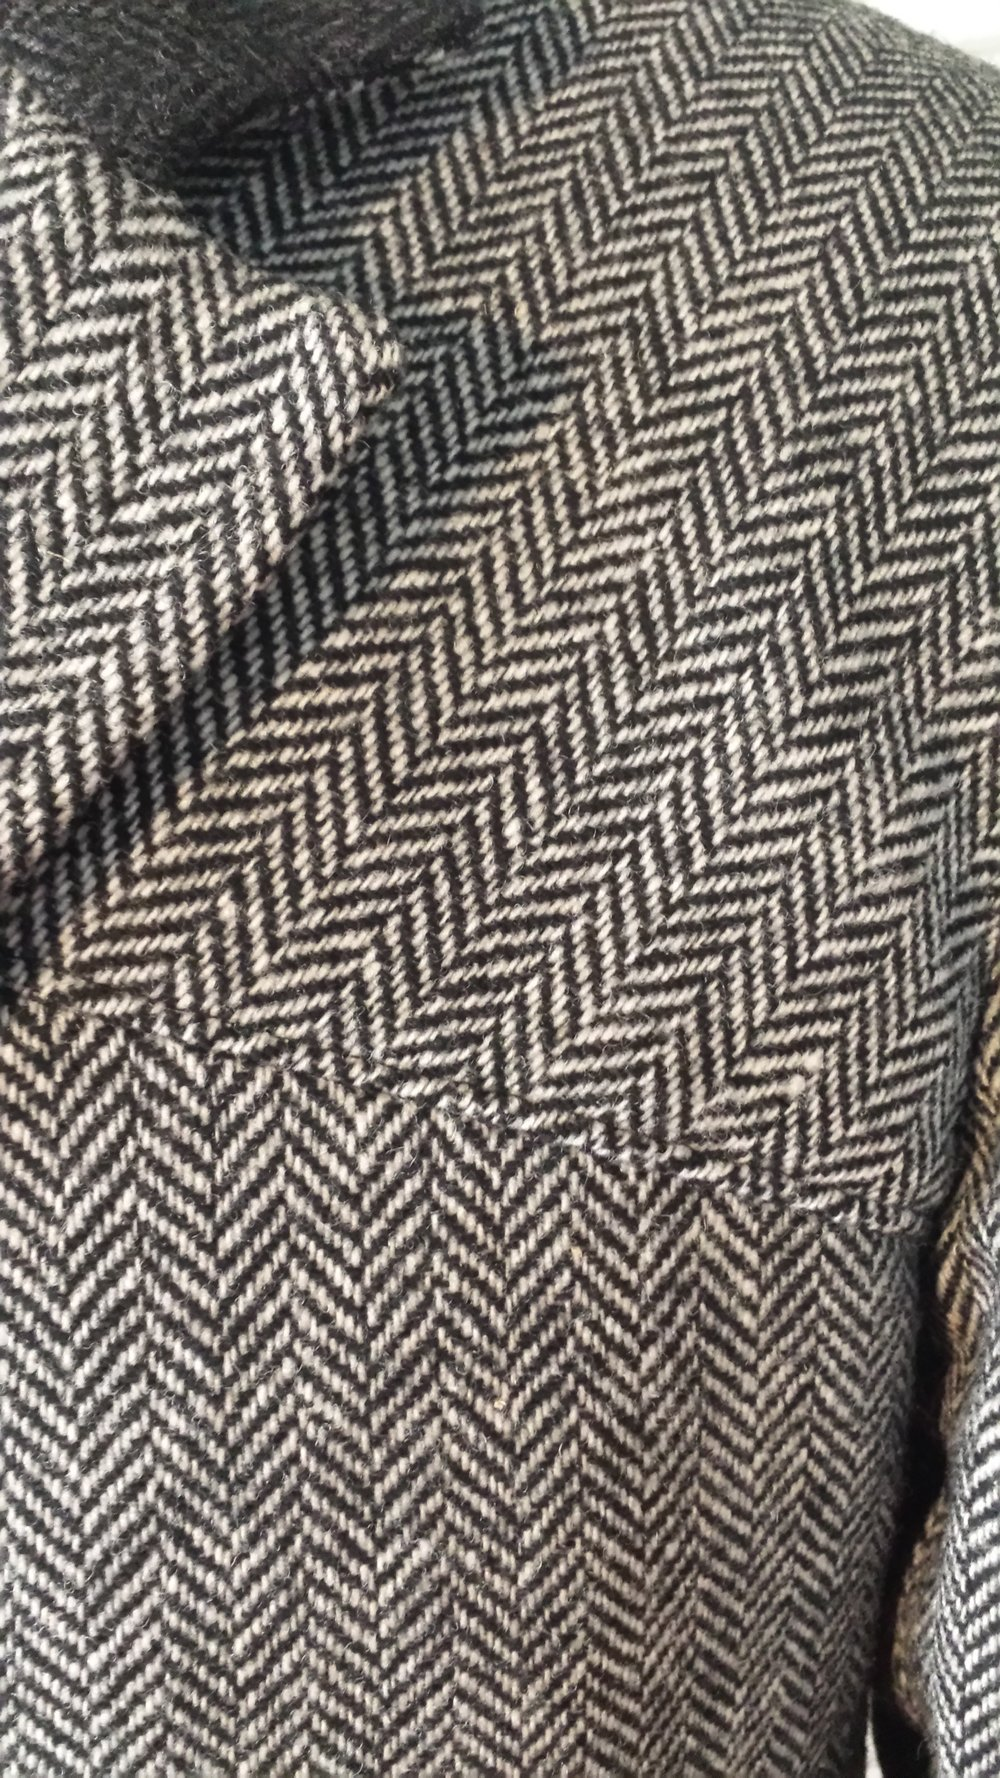 Pattern Matching in tailoring